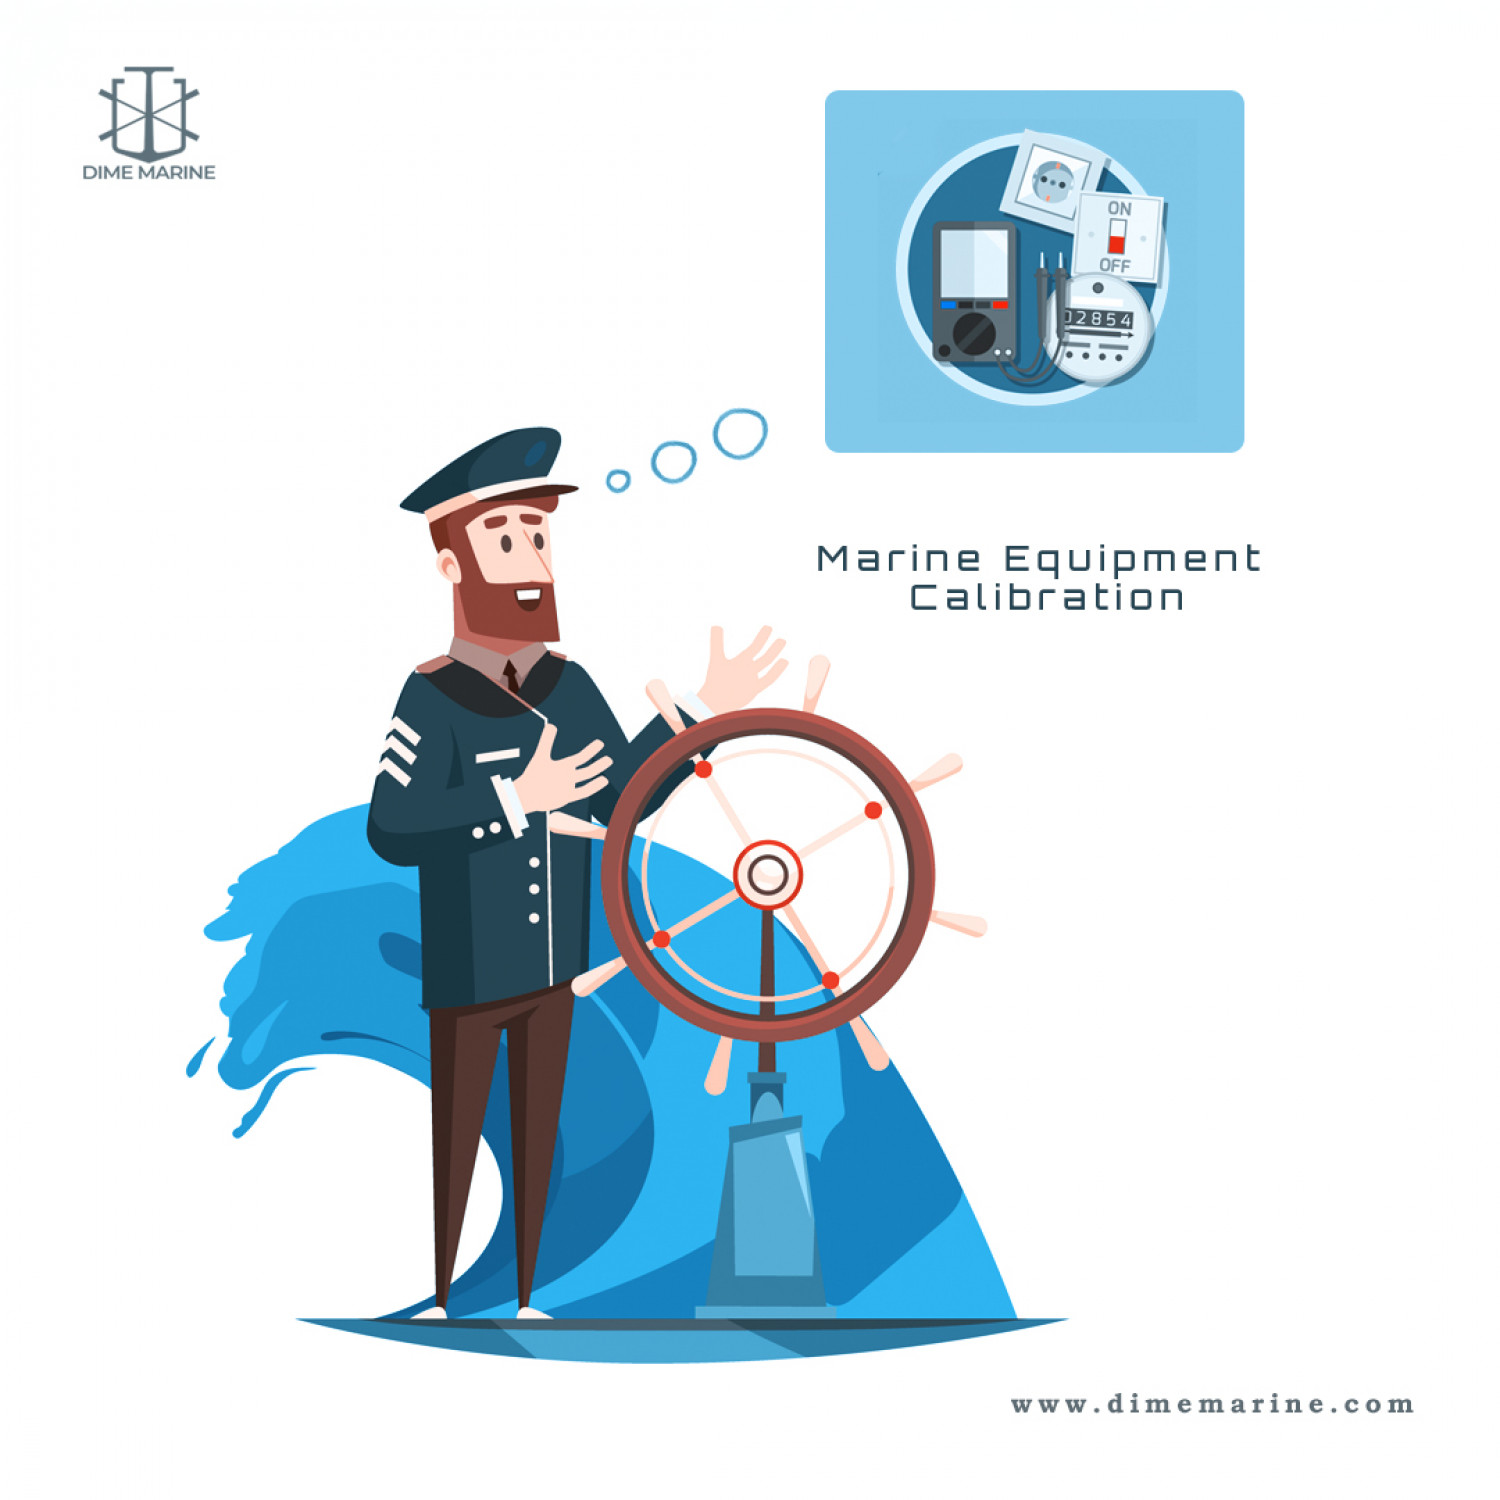 Eliminate maritime risk with proper instrument calibration Infographic